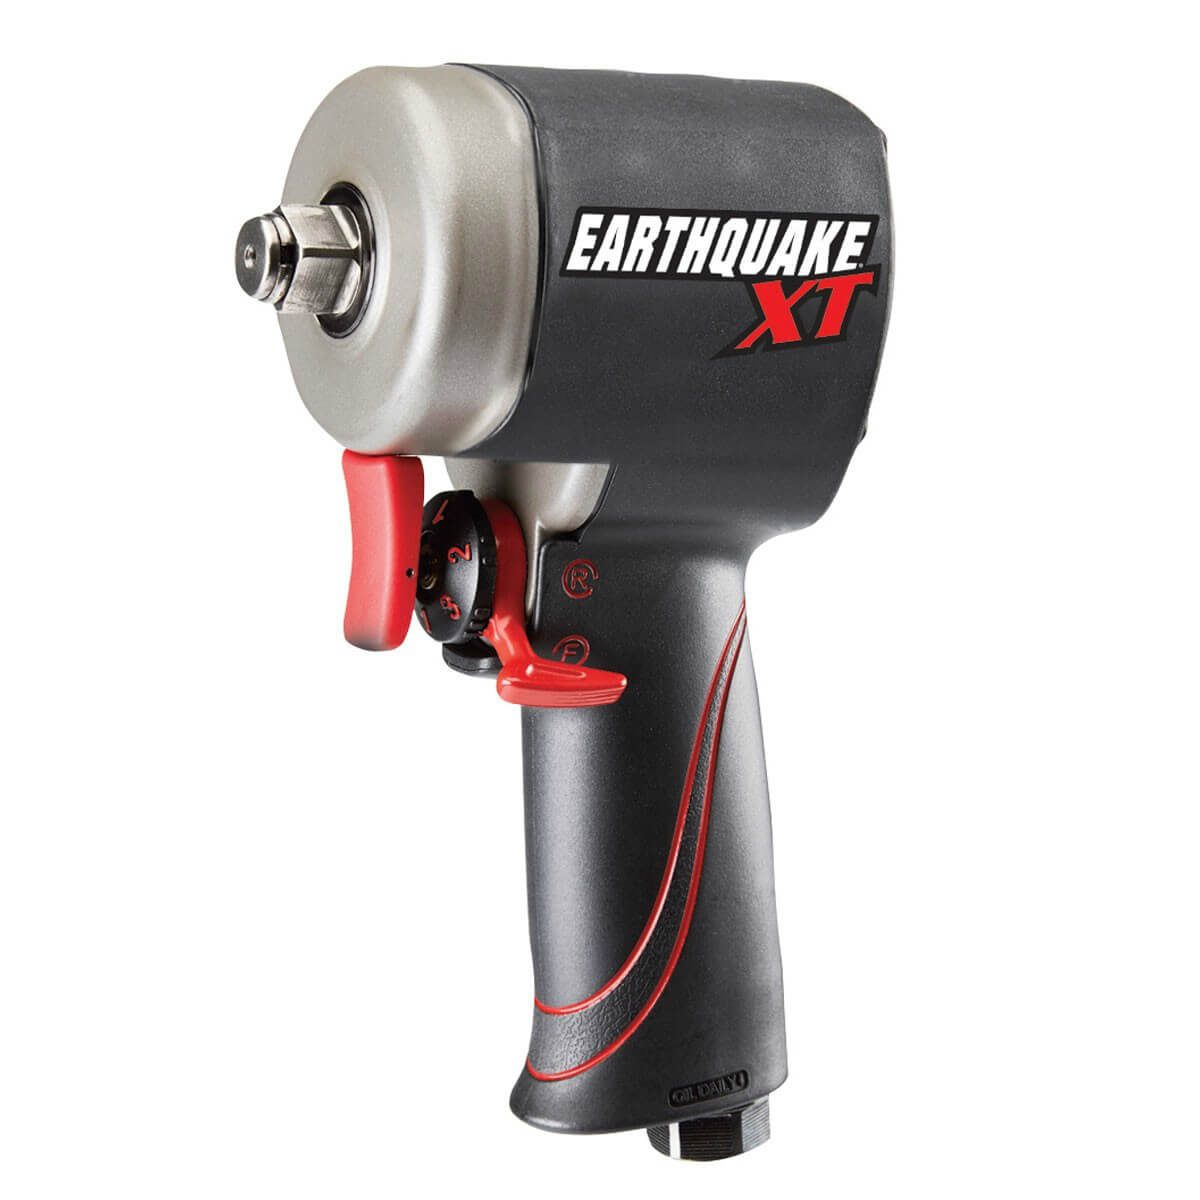 Stub Impact Wrench